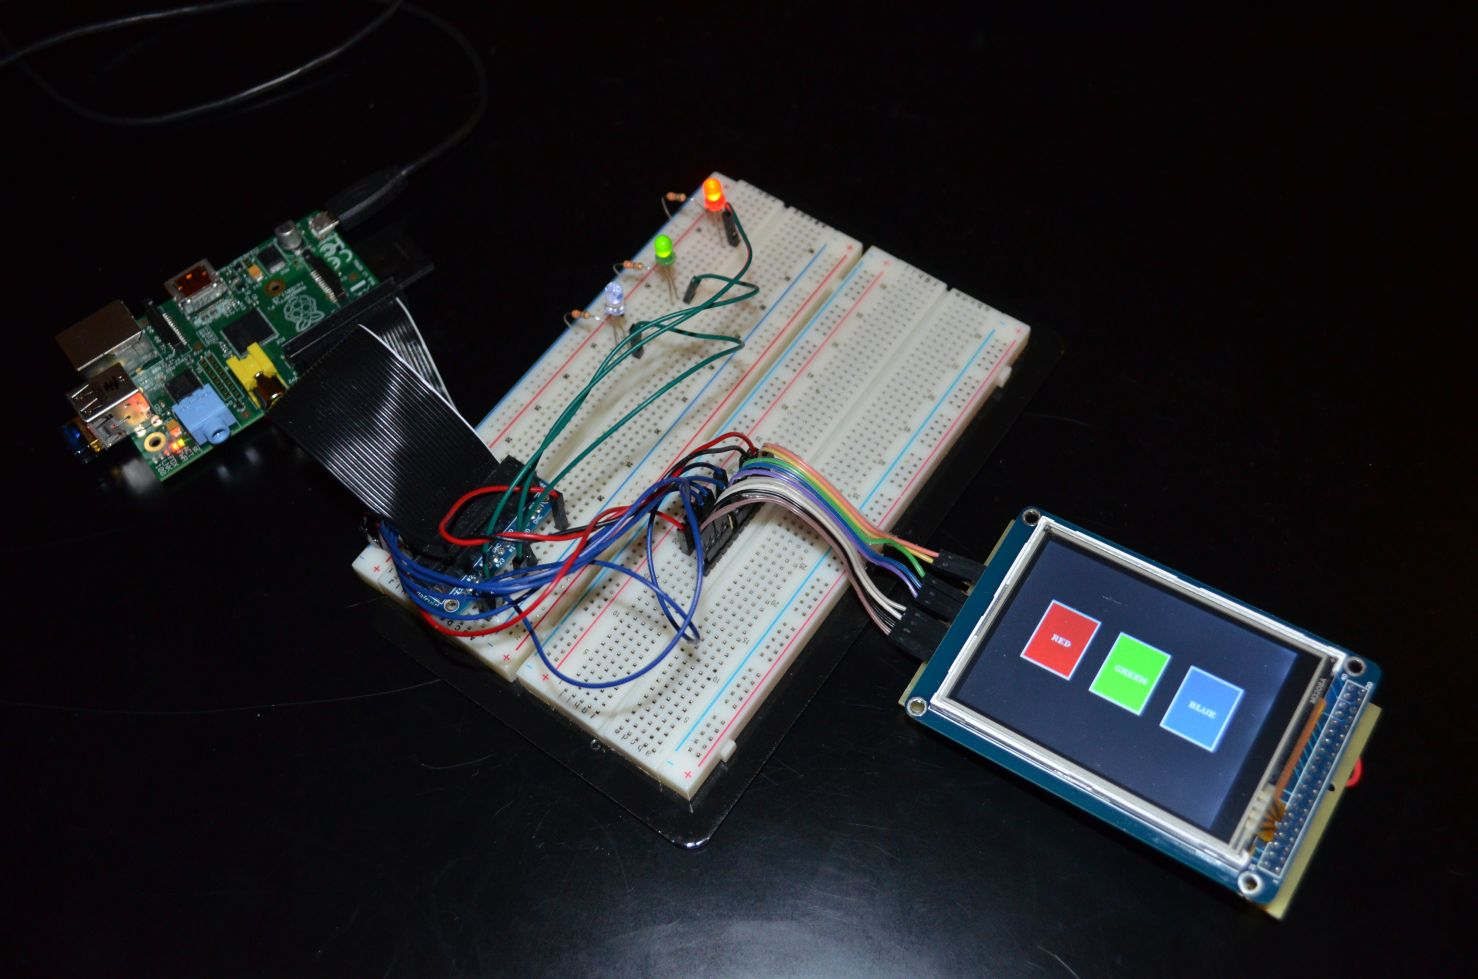 Wiringpi Button Example Smart Wiring Diagrams Gpio Table Controlling The On A Raspberry Pi With Touchscreen Pwm B Pinout